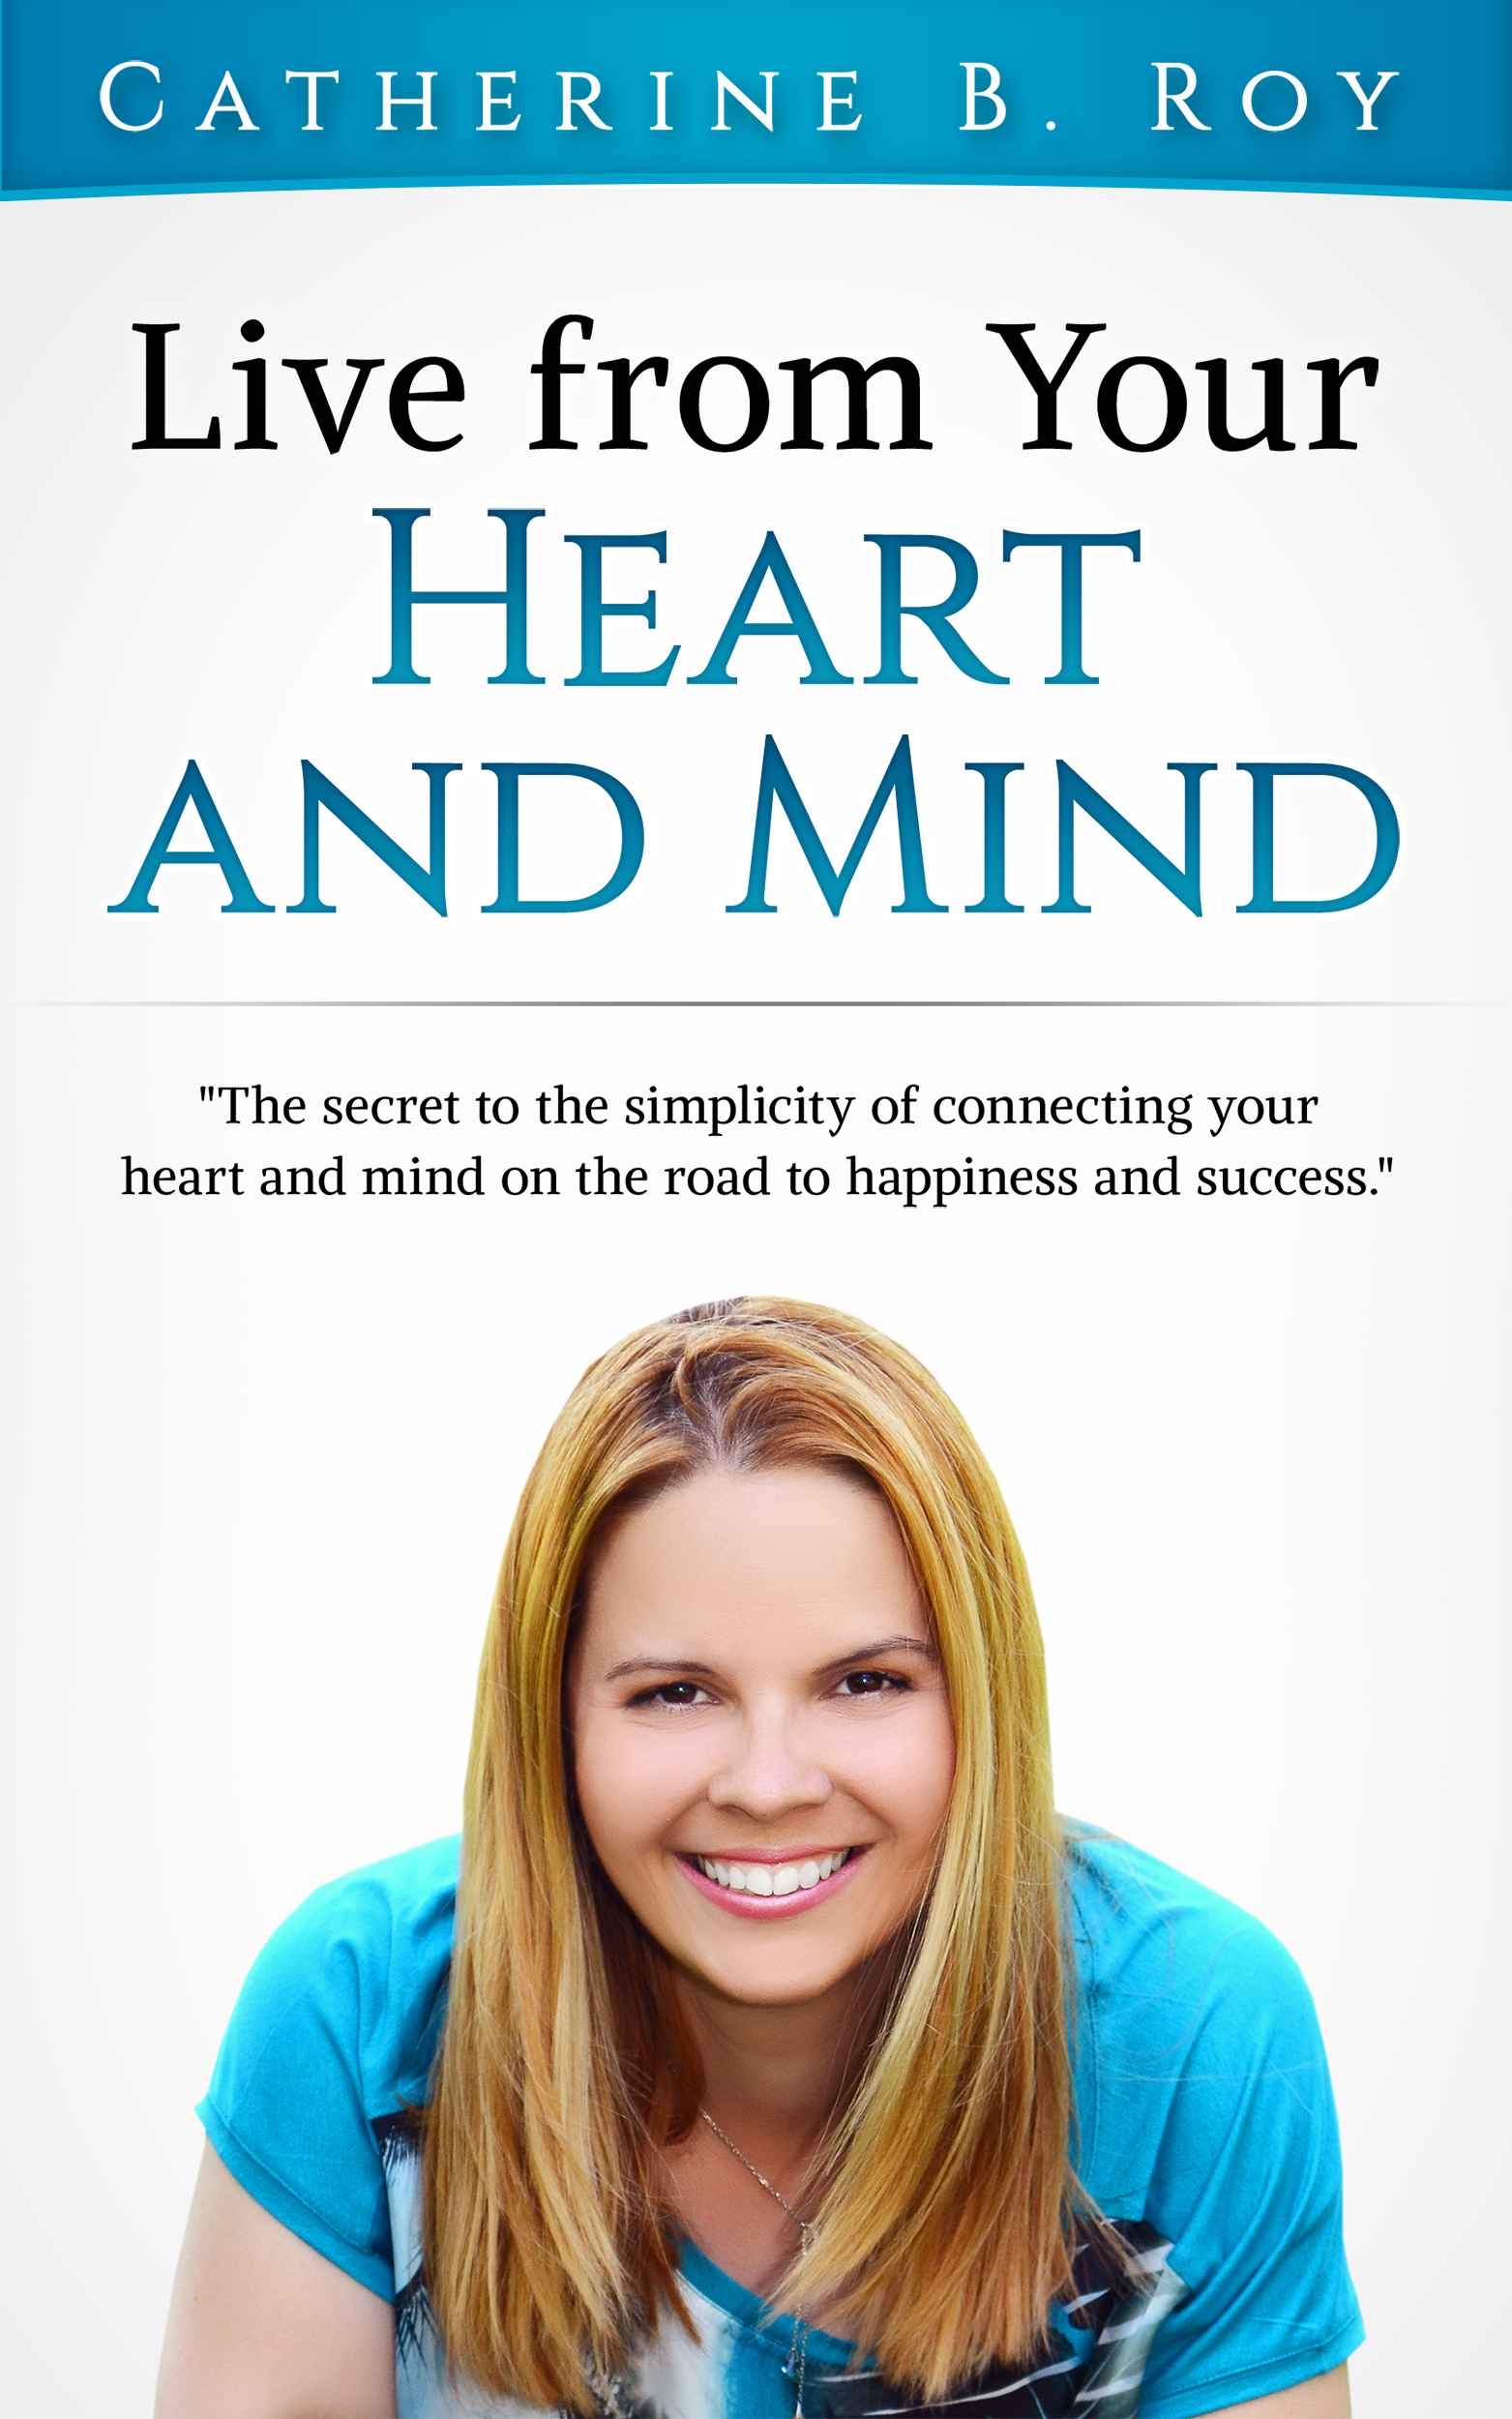 Live from Your Heart and Mind by Catherine B. Roy